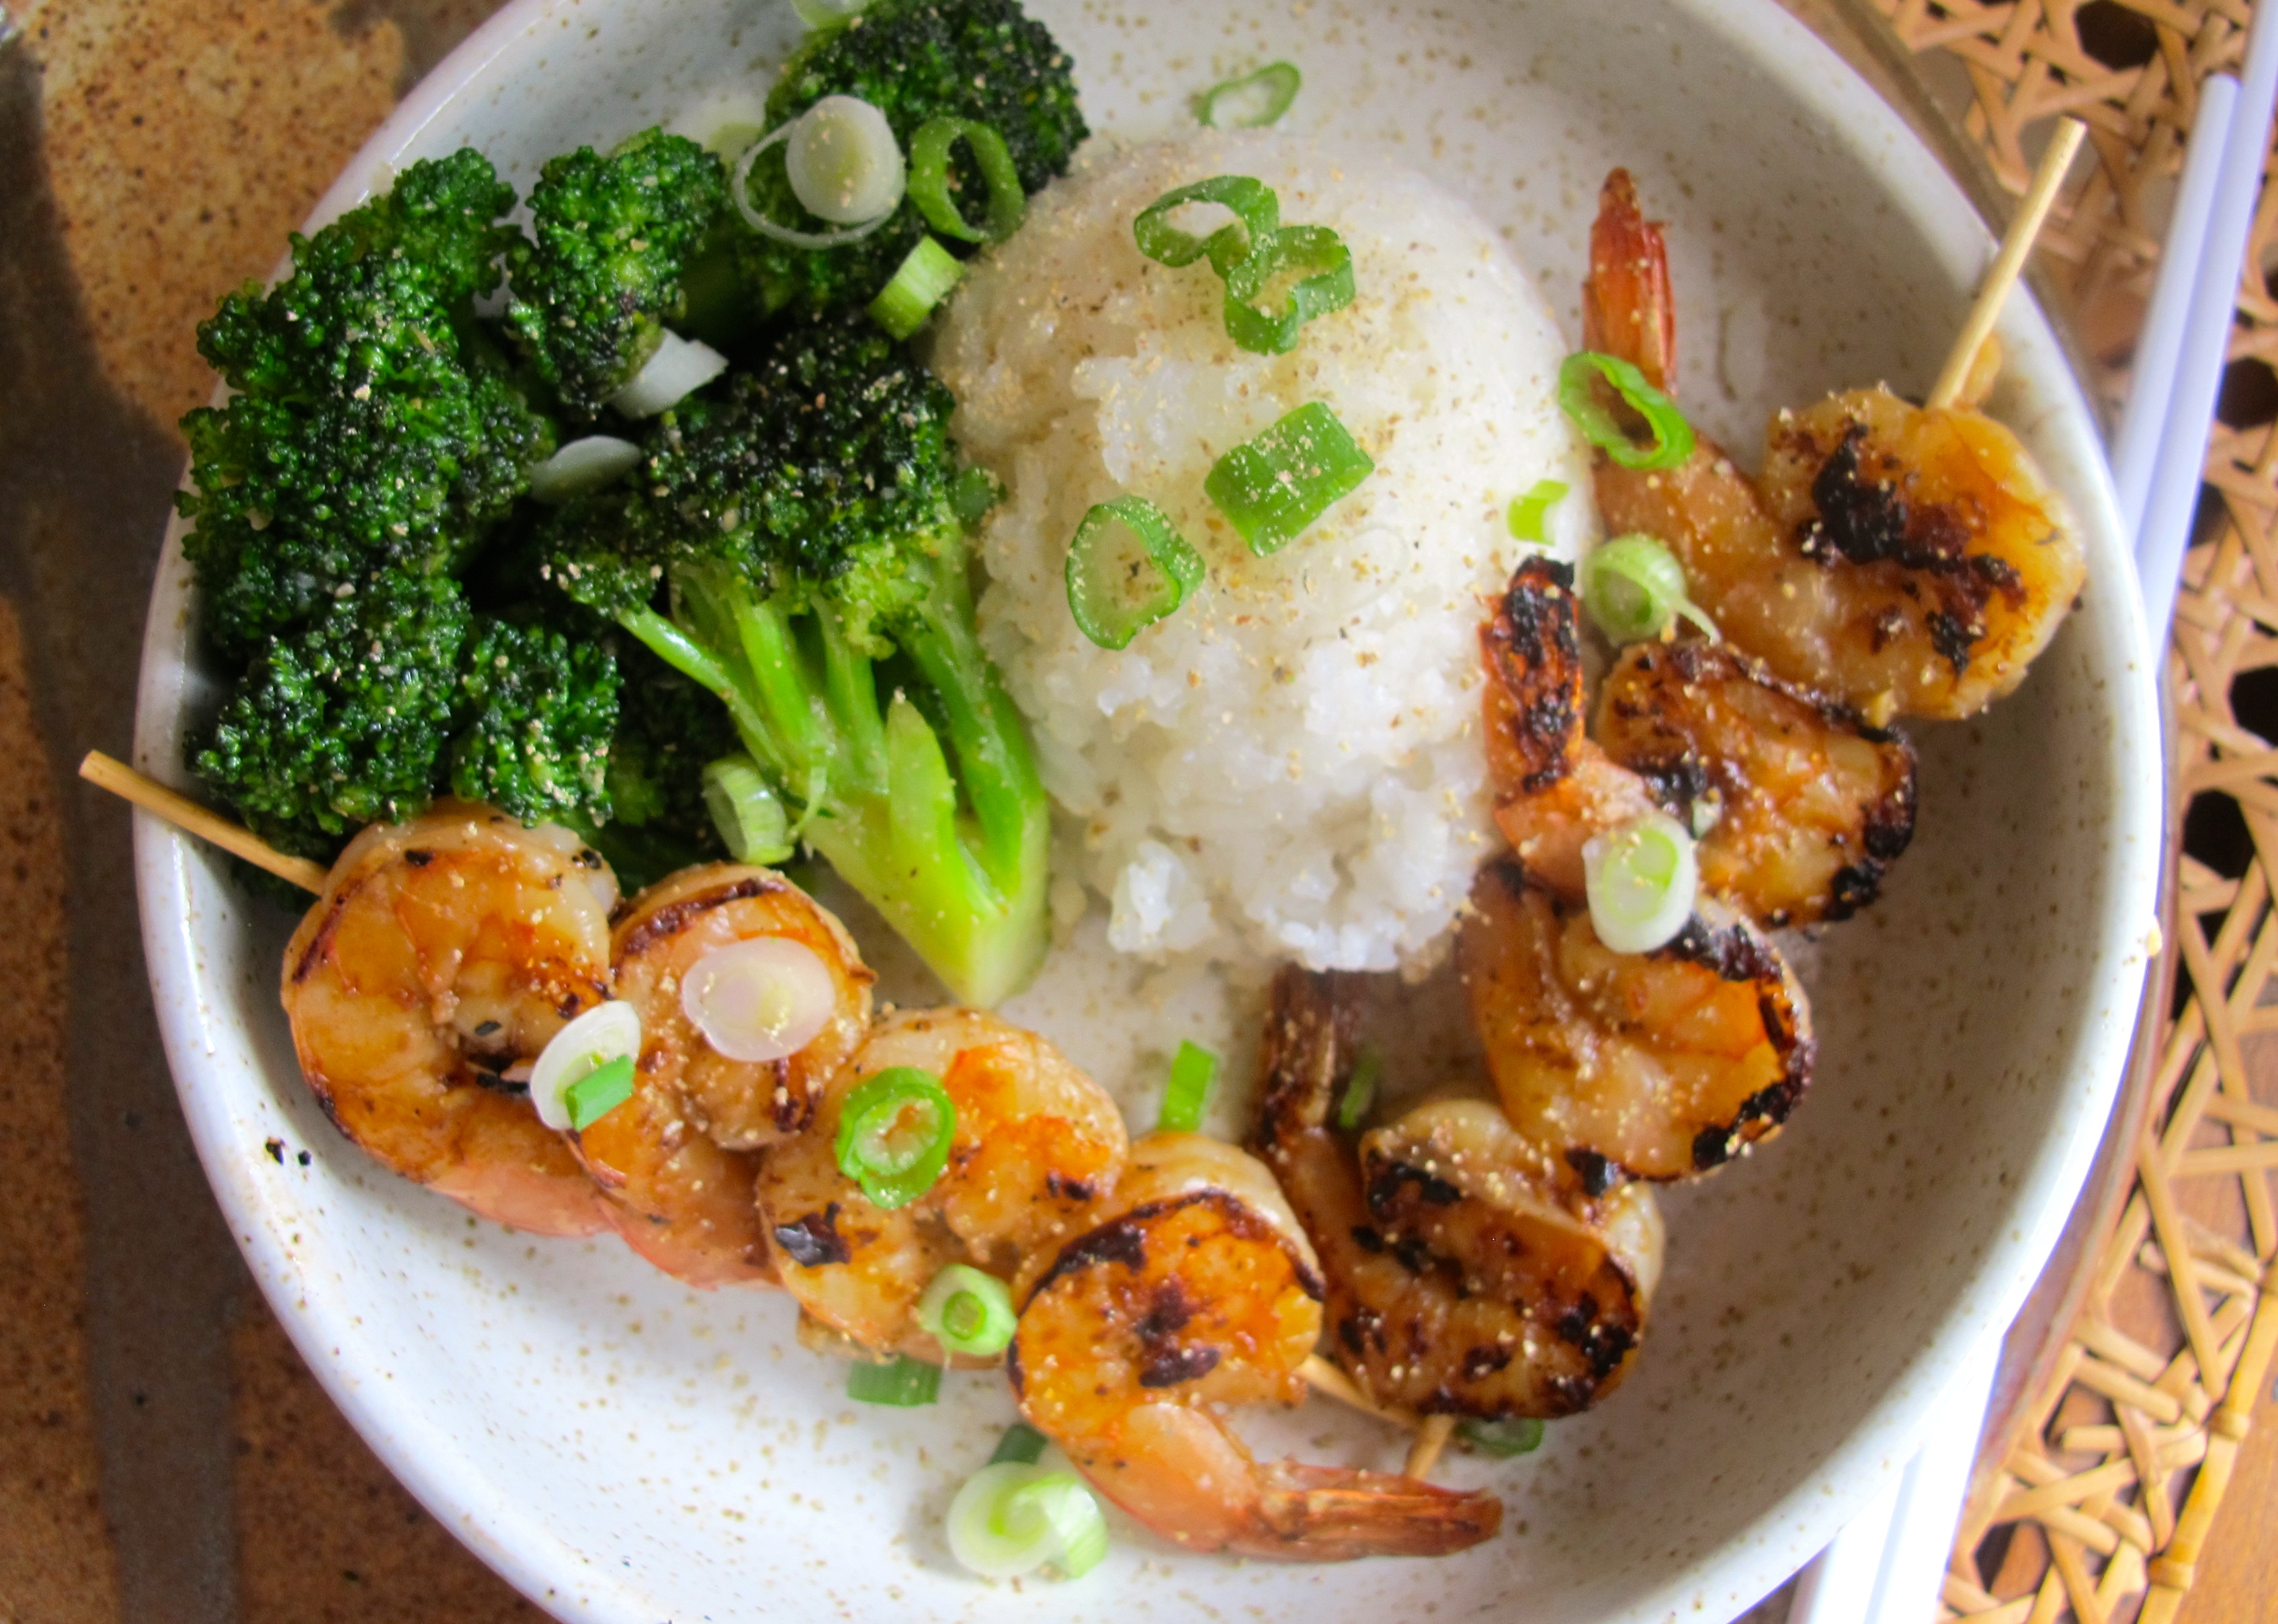 Friday Fish–Garlic + Ginger Shrimp and Broccoli with Sticky Rice